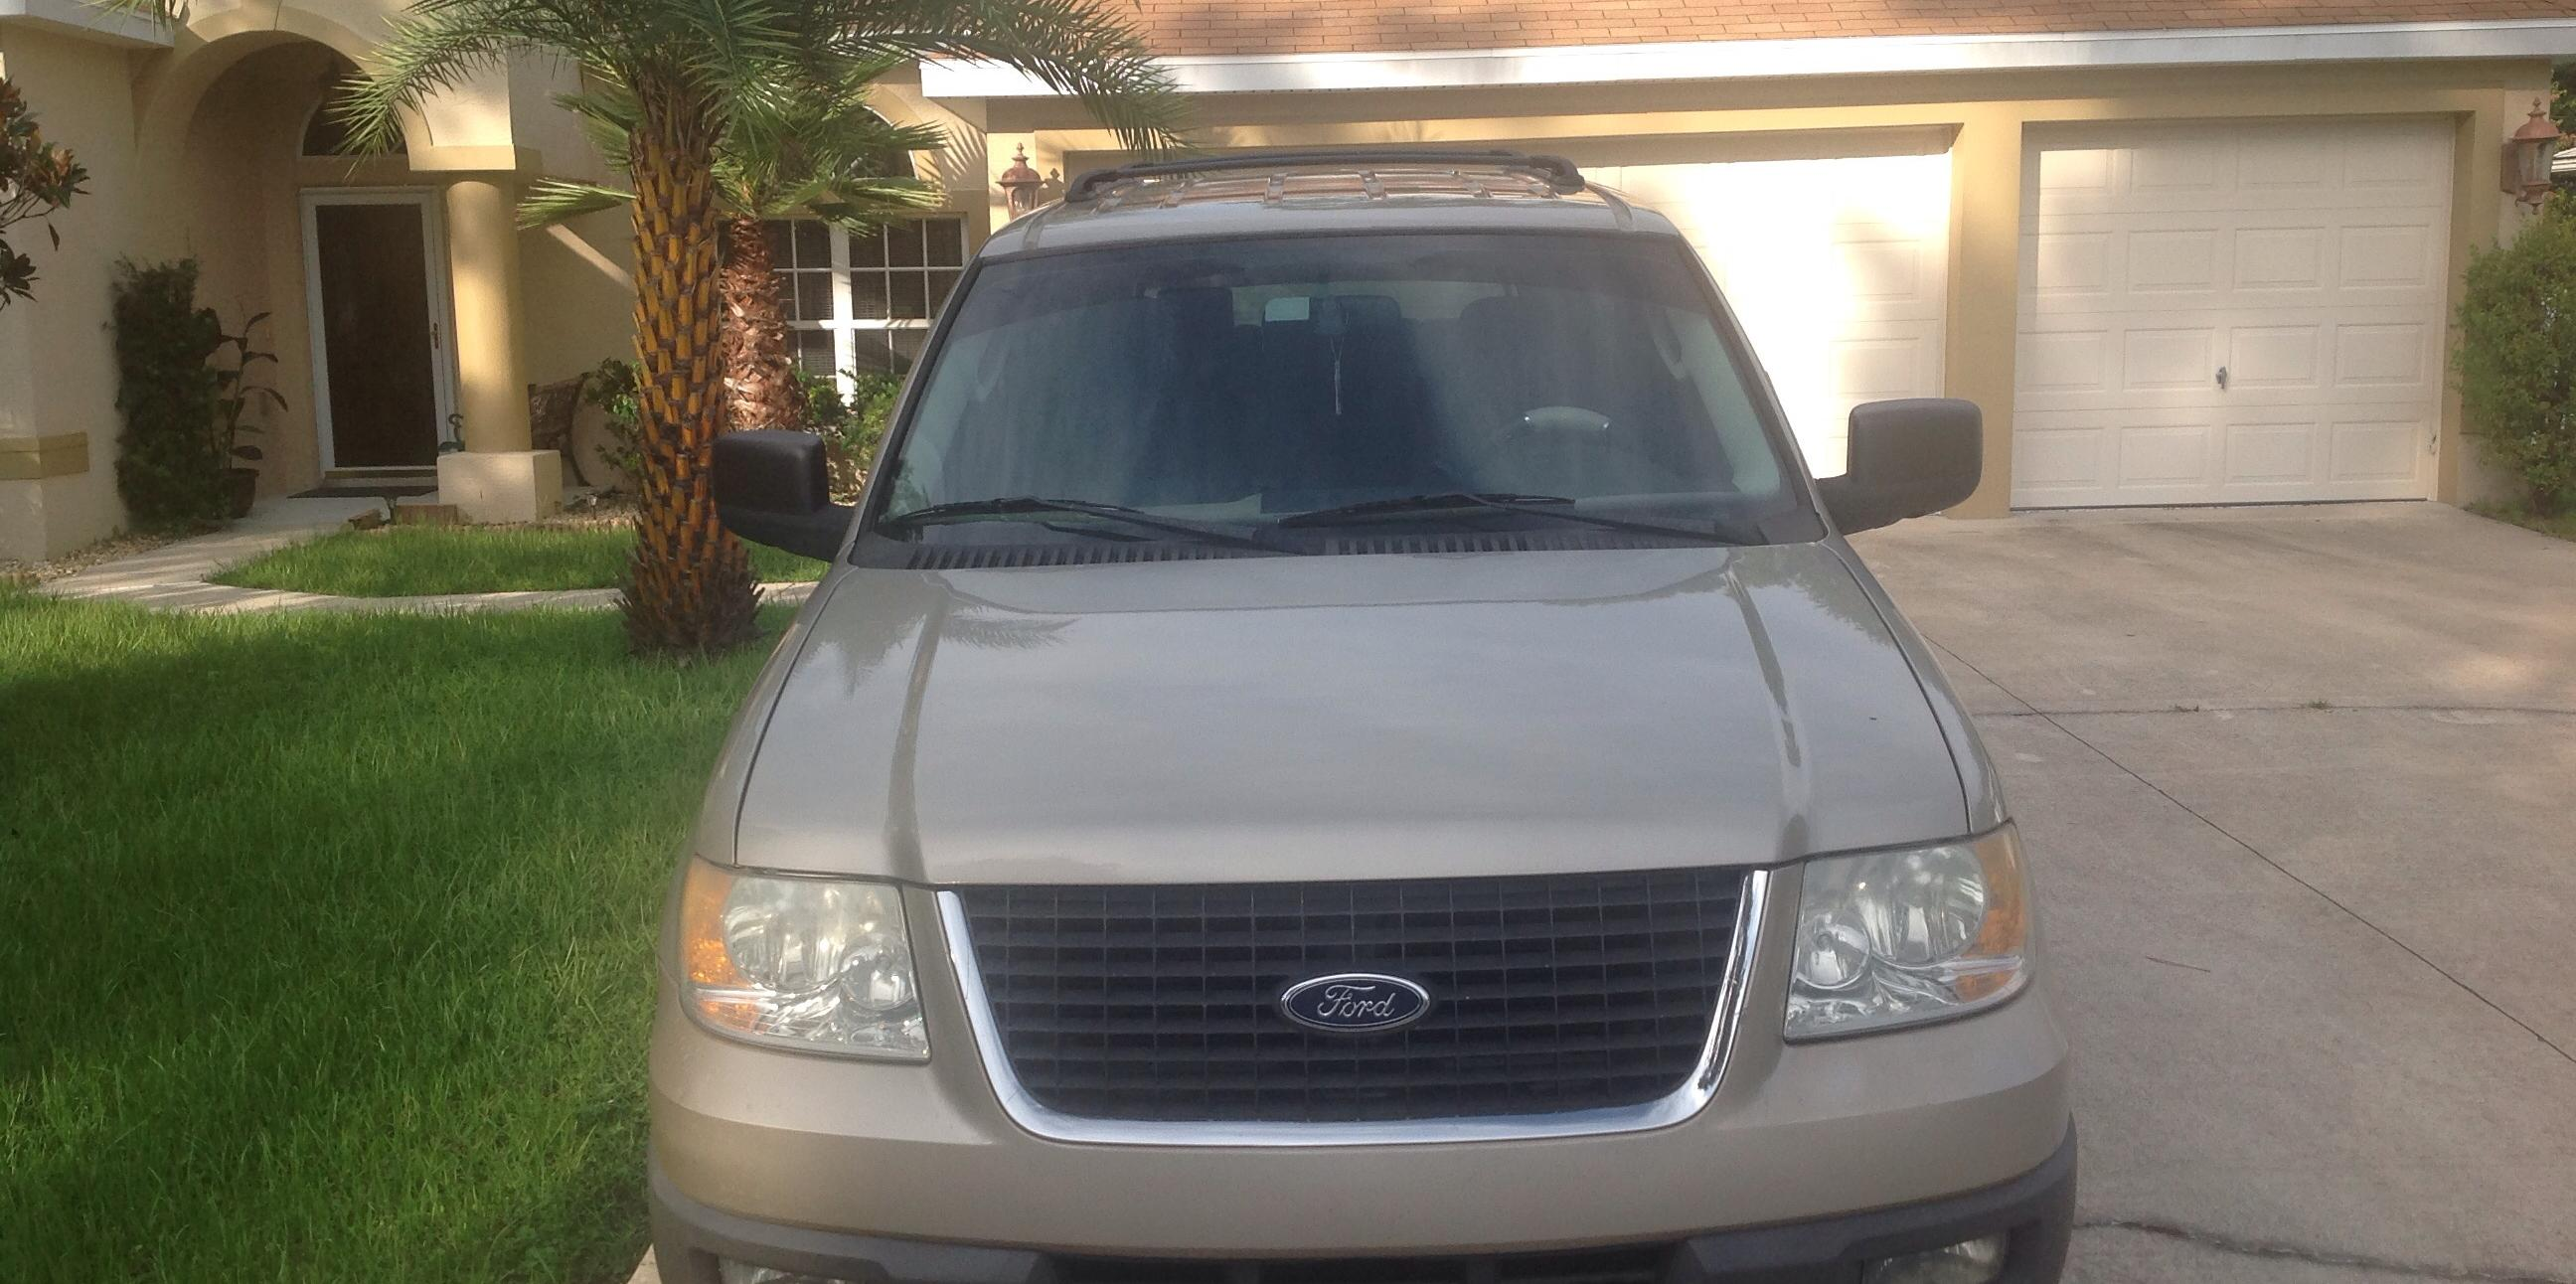 twakefield 2004 Ford Expedition